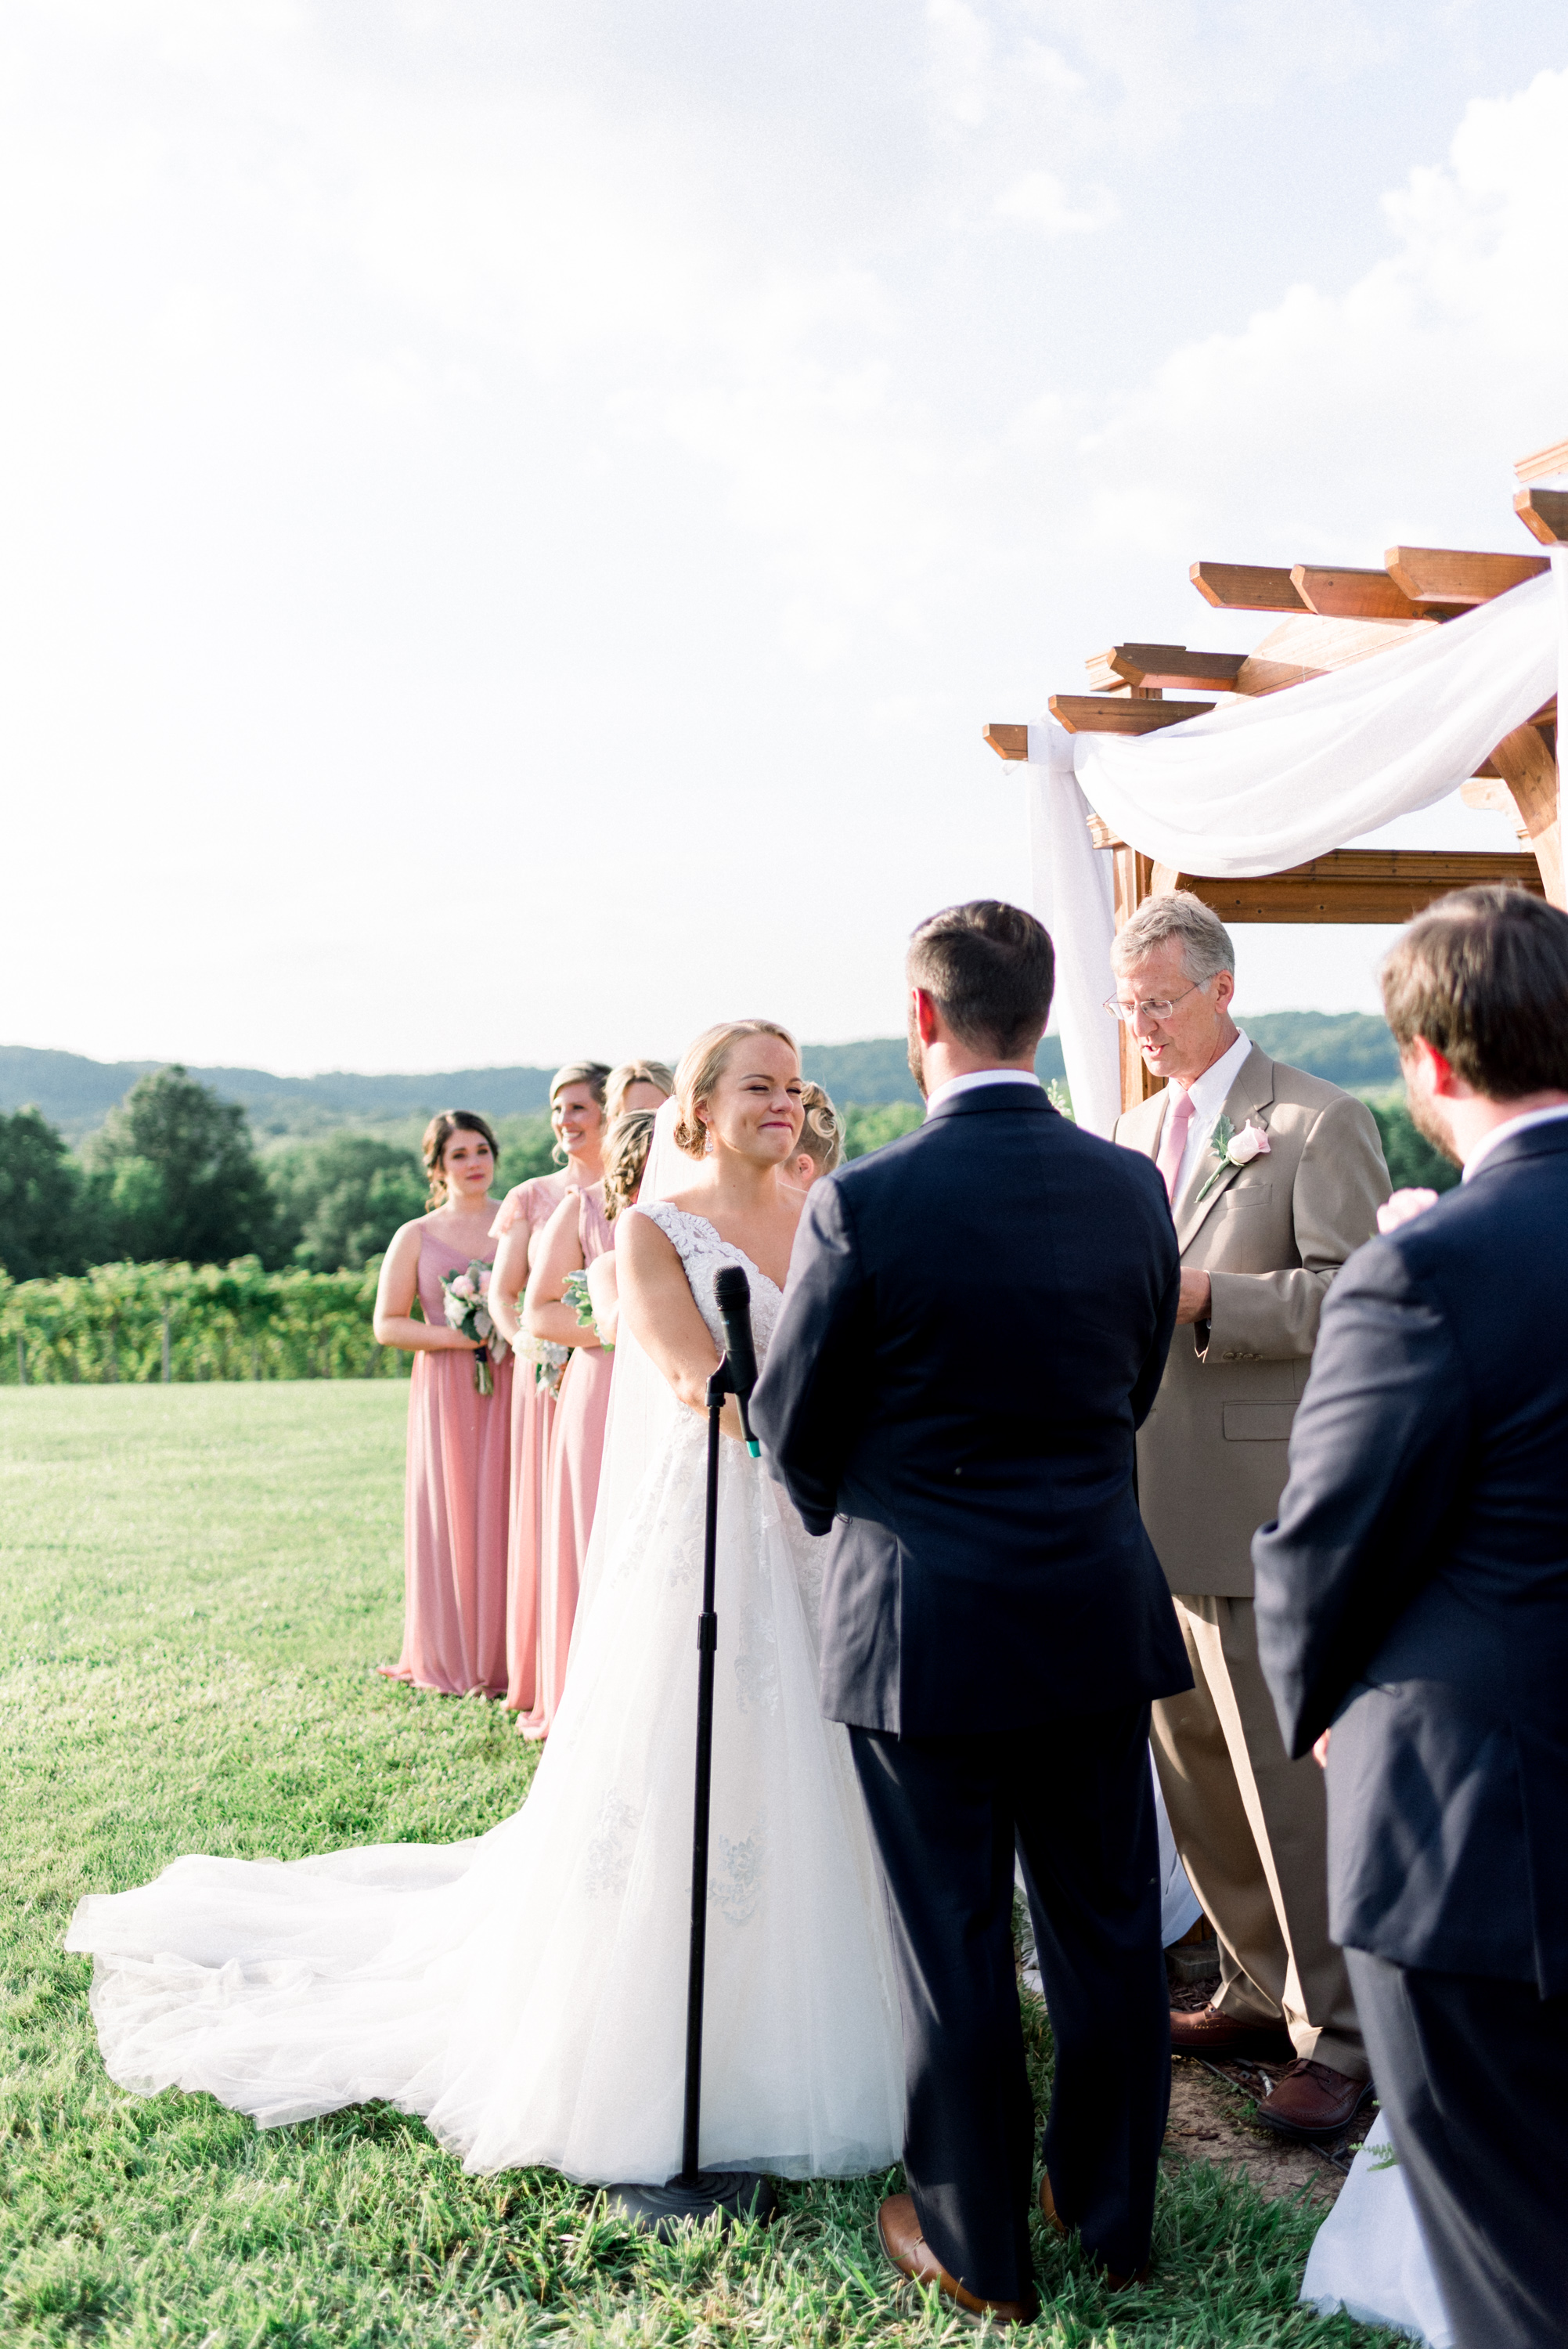 Molly + Dan wedding 6-7-19 (614 of 916).jpg